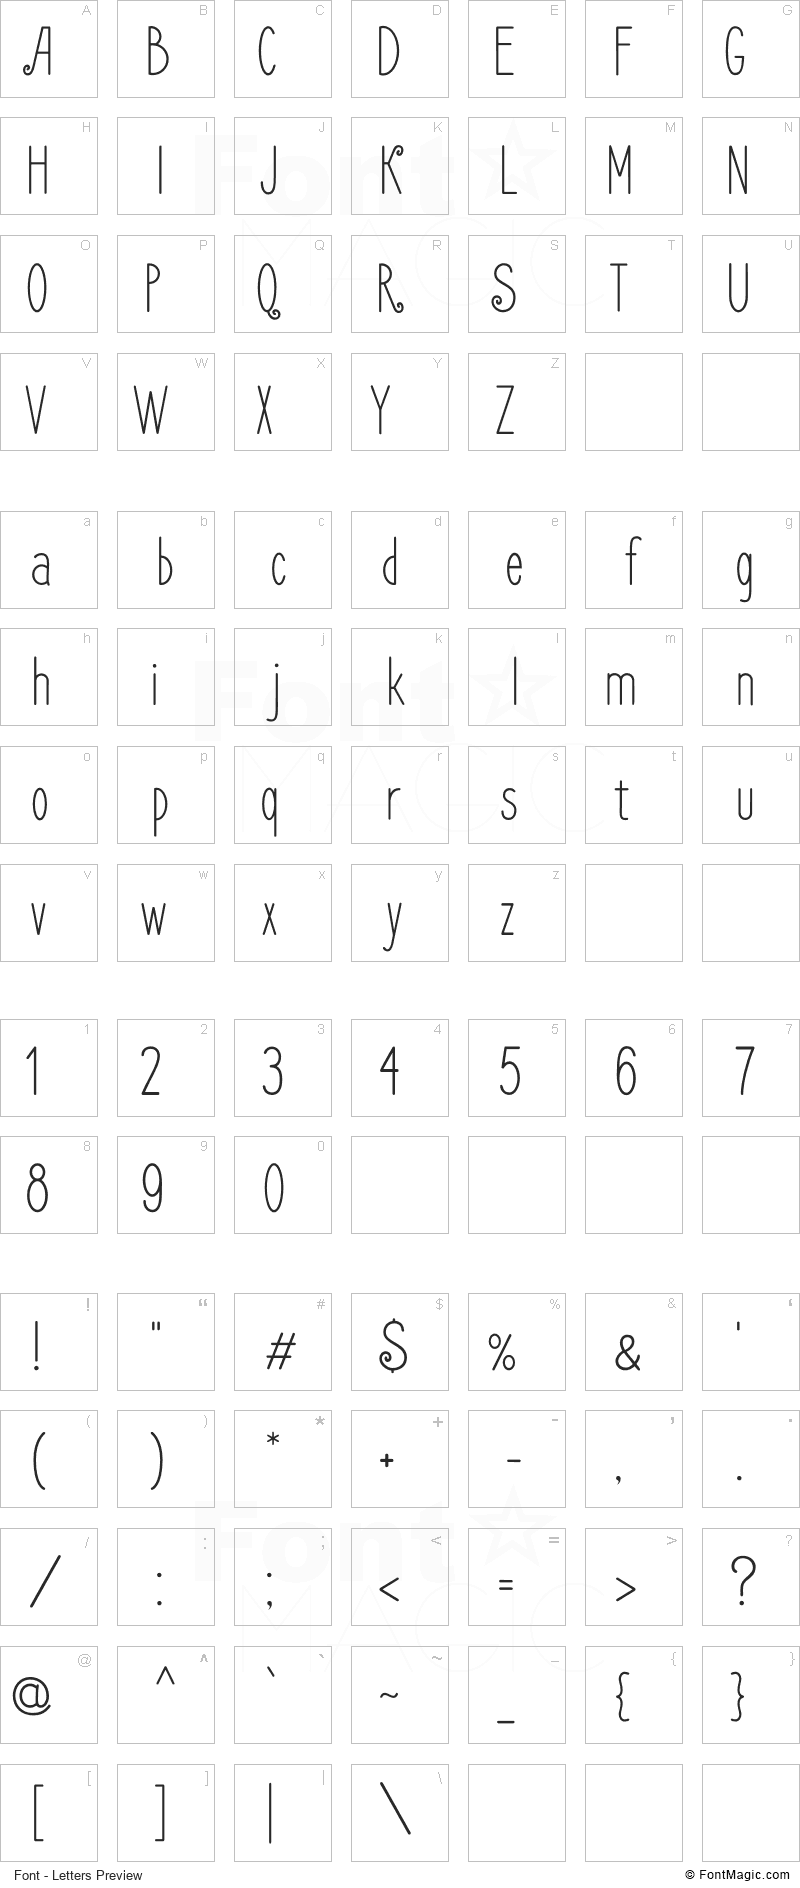 Frenchpress Font - All Latters Preview Chart